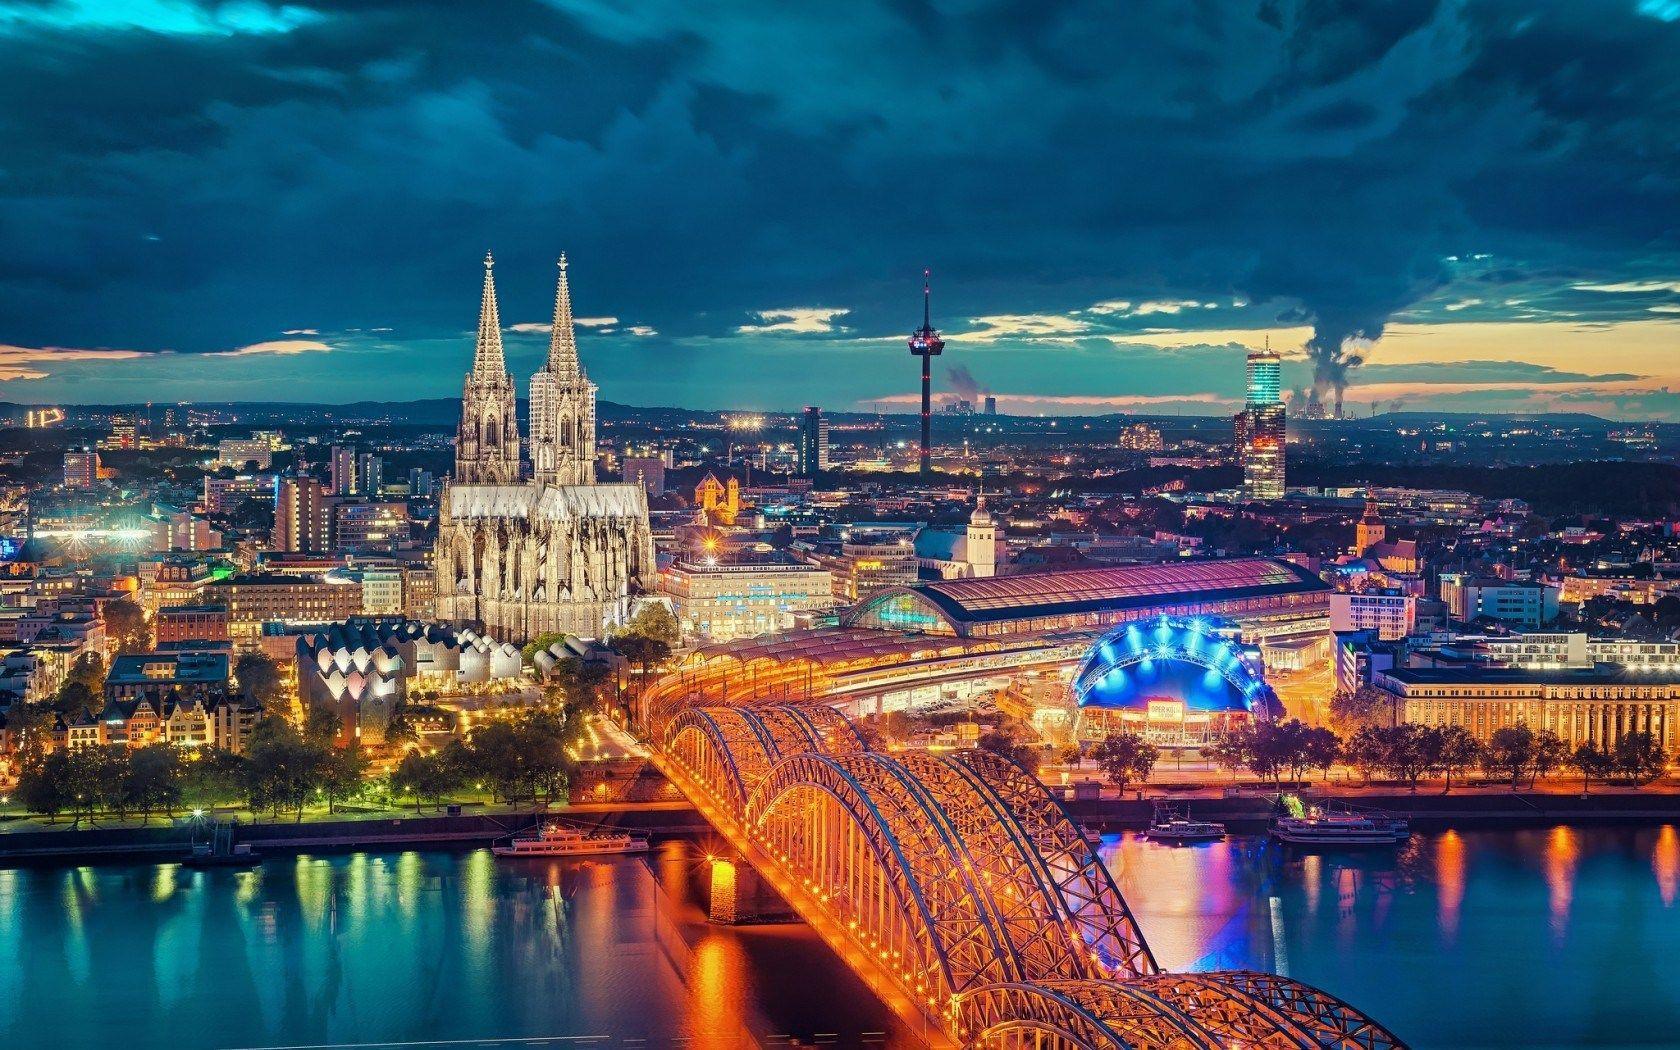 Germany City HD Wallpaper, Backgrounds Image